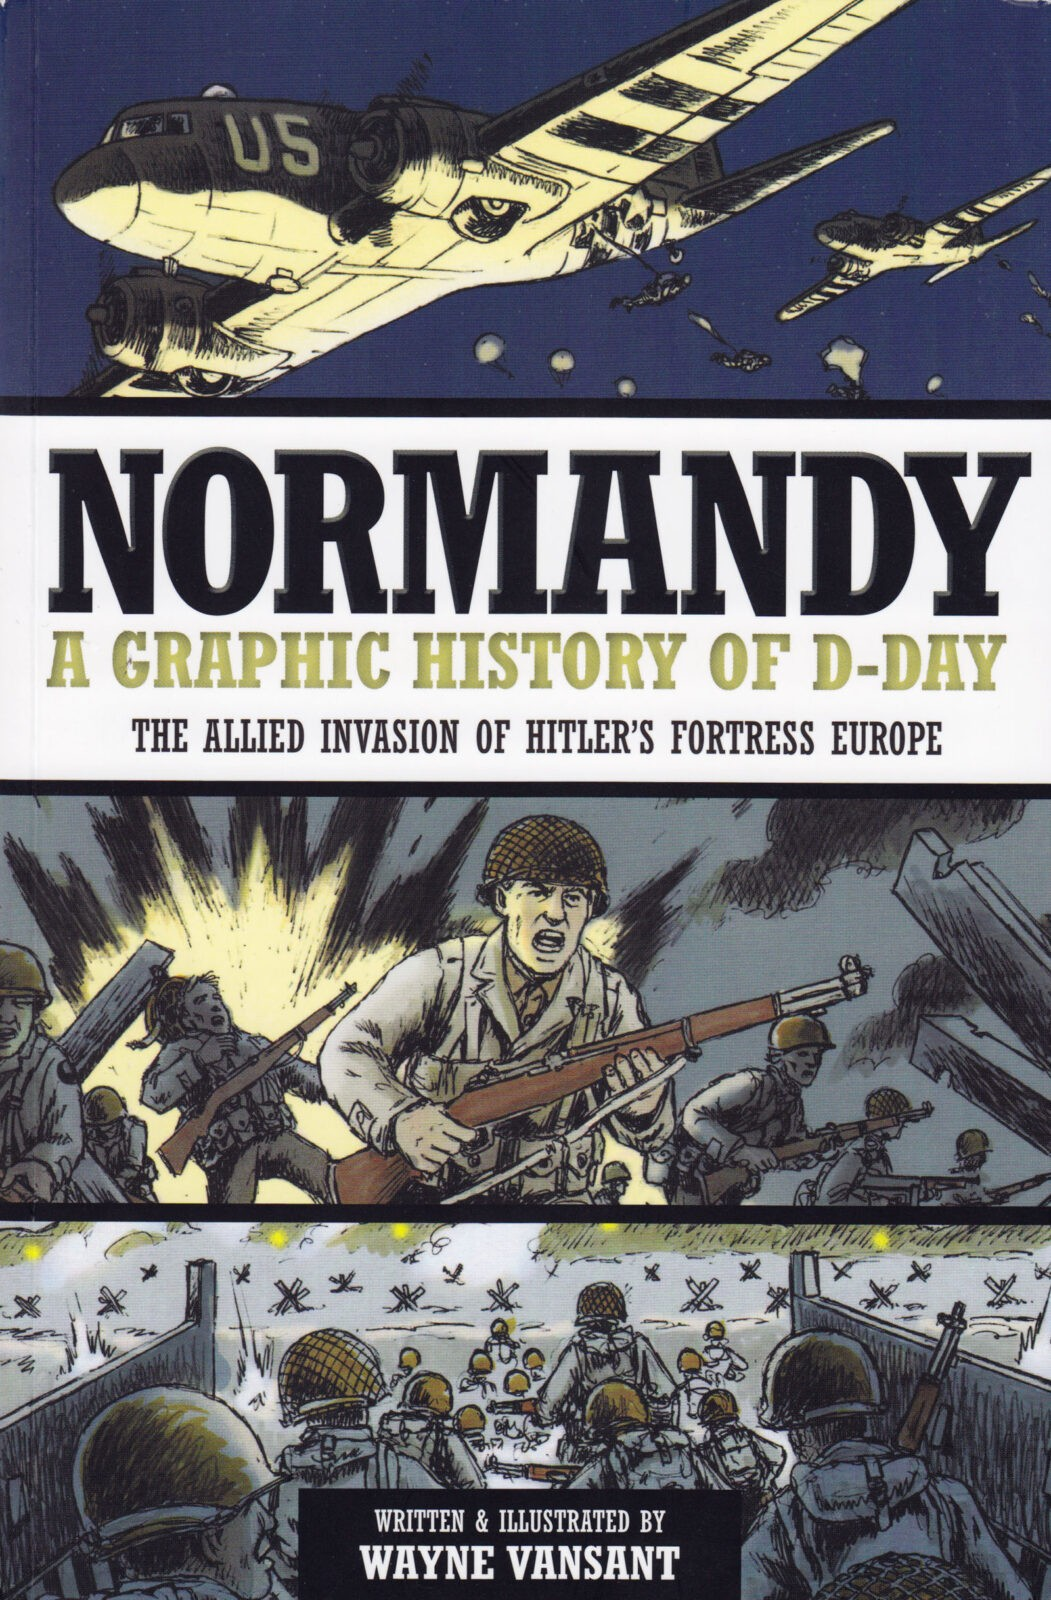 a summary of the events of d day The d-day landings in normandy was one of the most influential events in the   including facts about the precipitating factors that led to it, and the summary and.